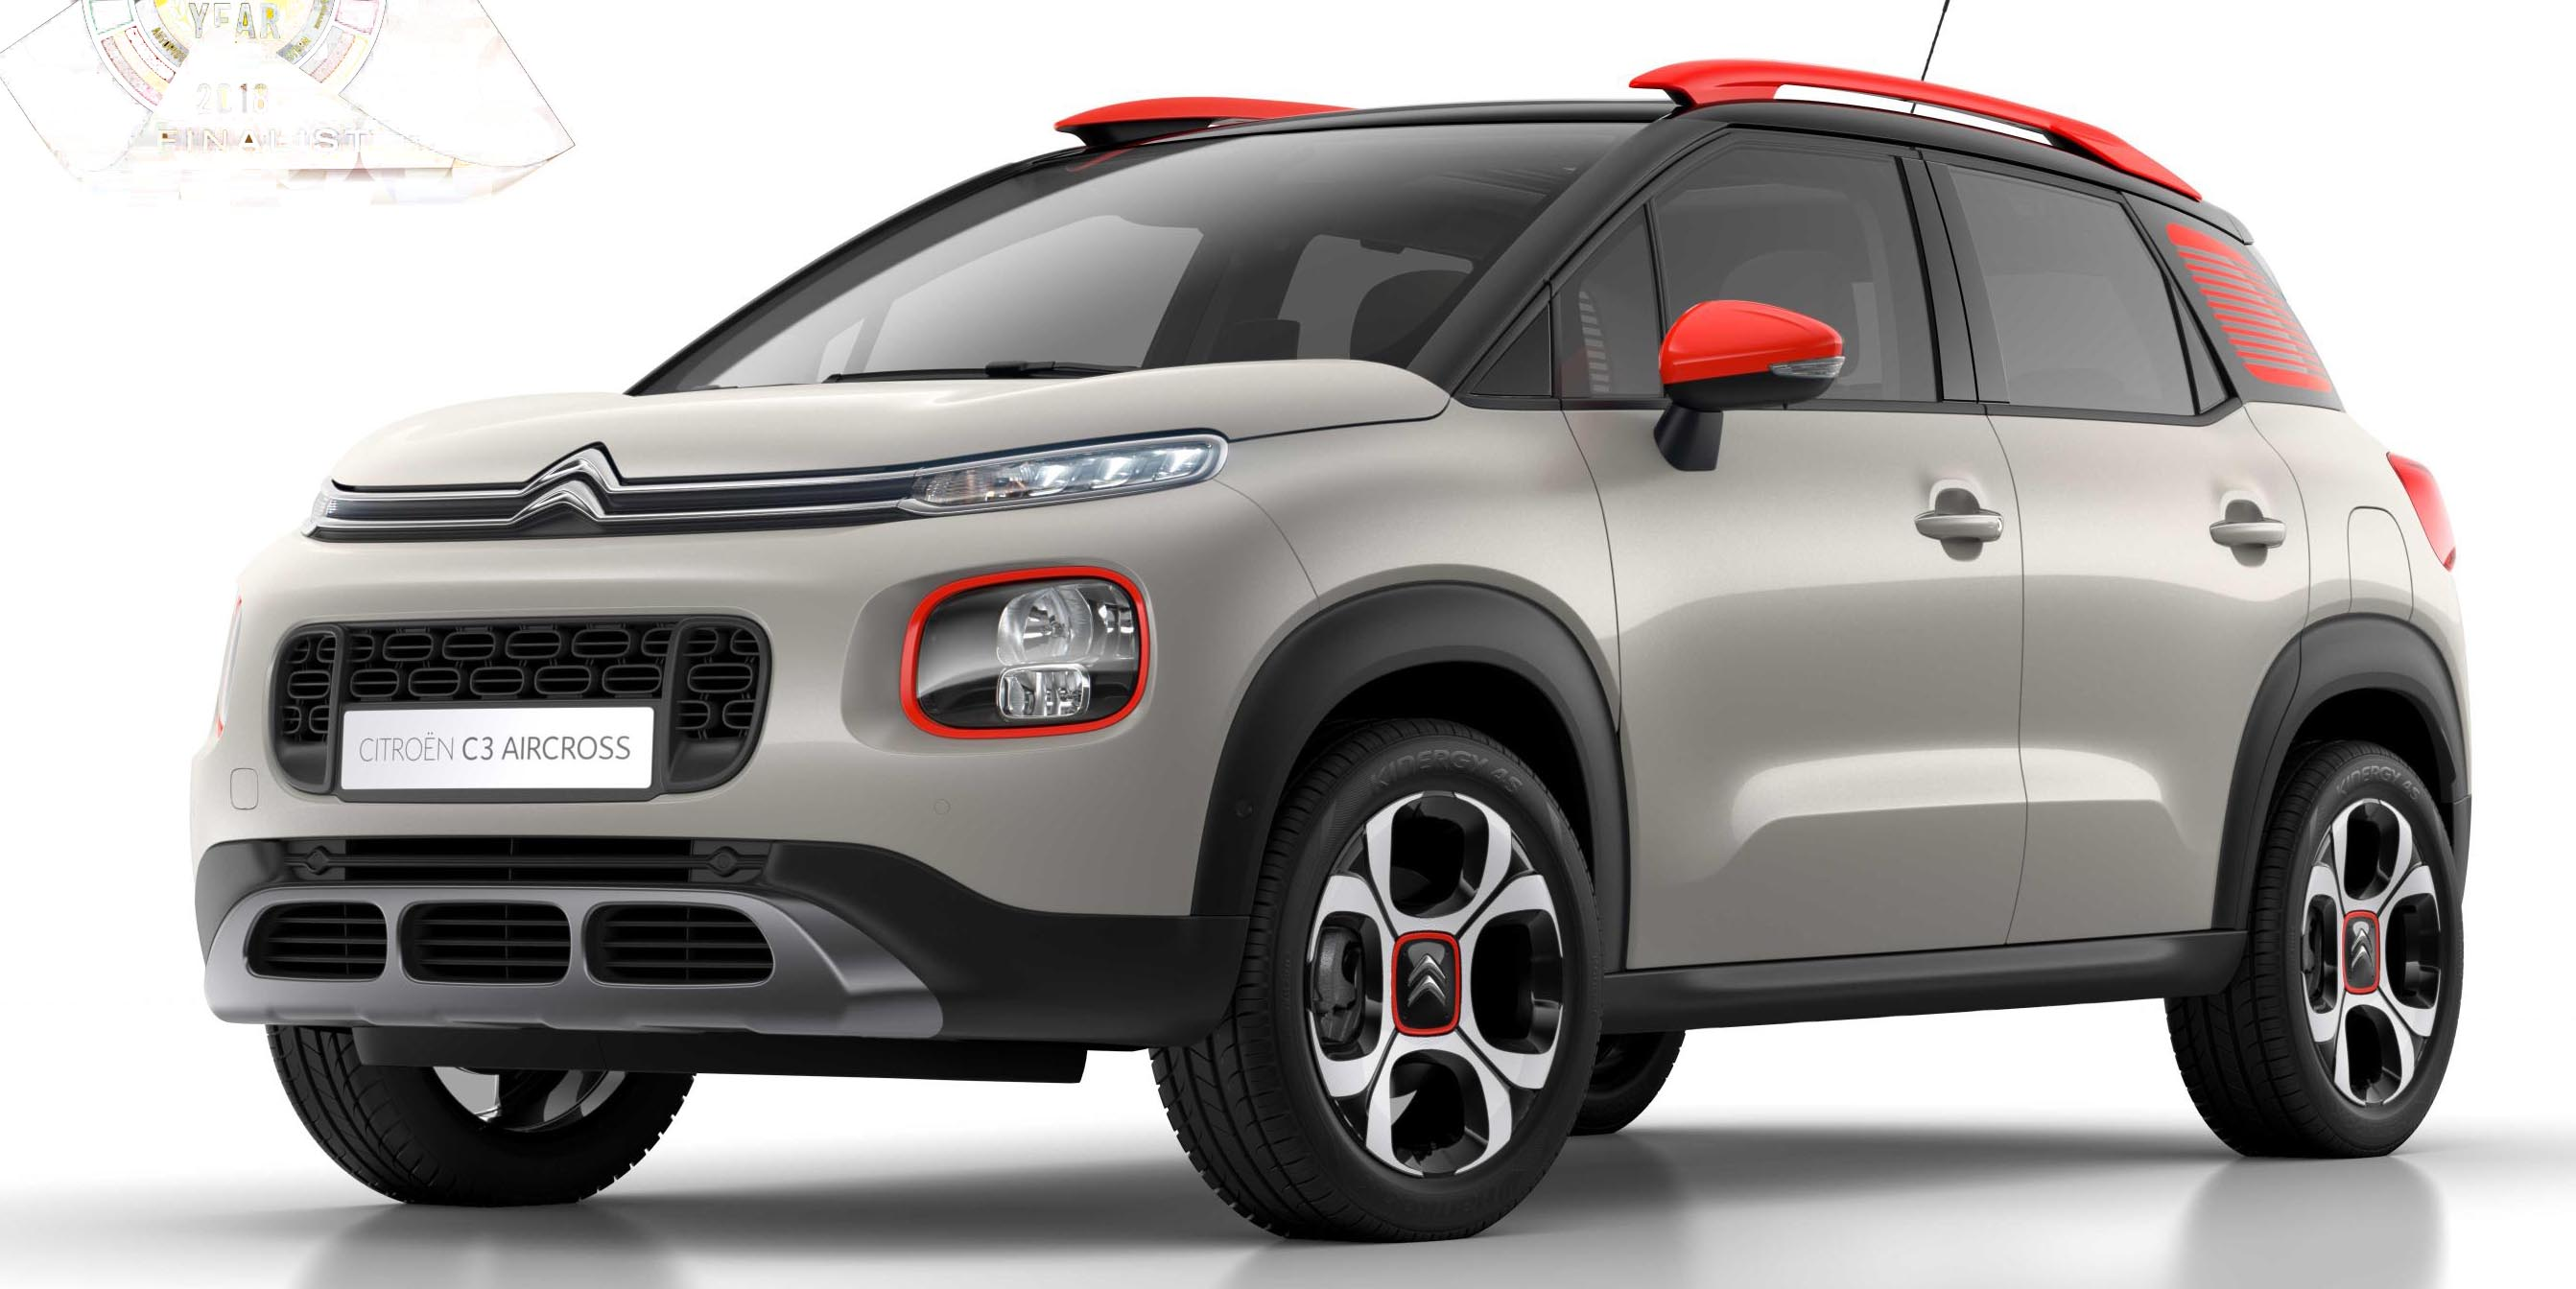 new citro n c3 aircross compact suv a finalist for car of the year 2018 the leader newspaper. Black Bedroom Furniture Sets. Home Design Ideas